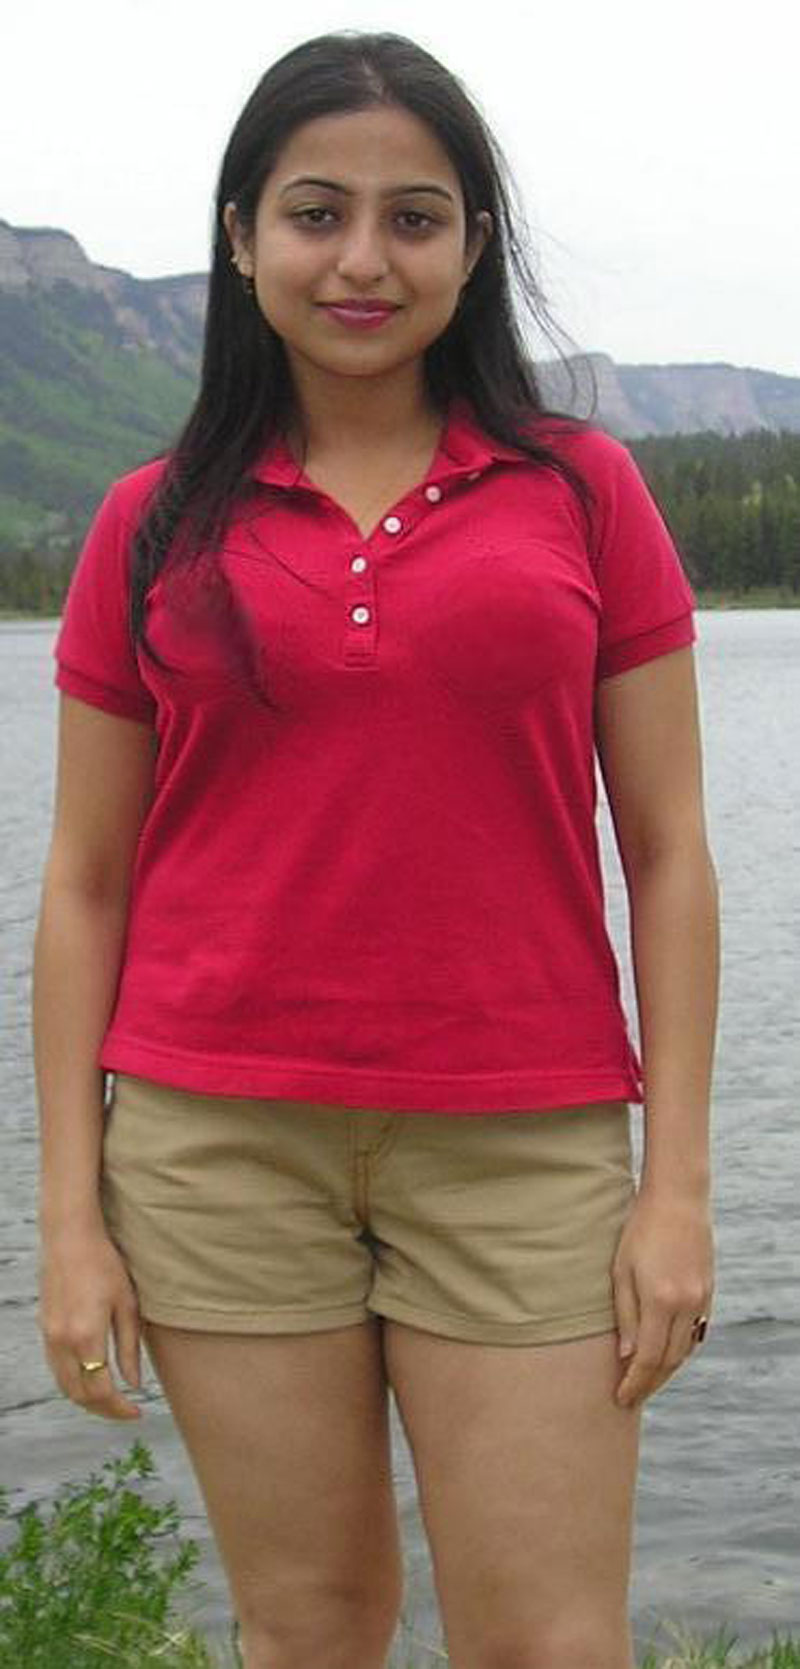 Nud picher adult gallery